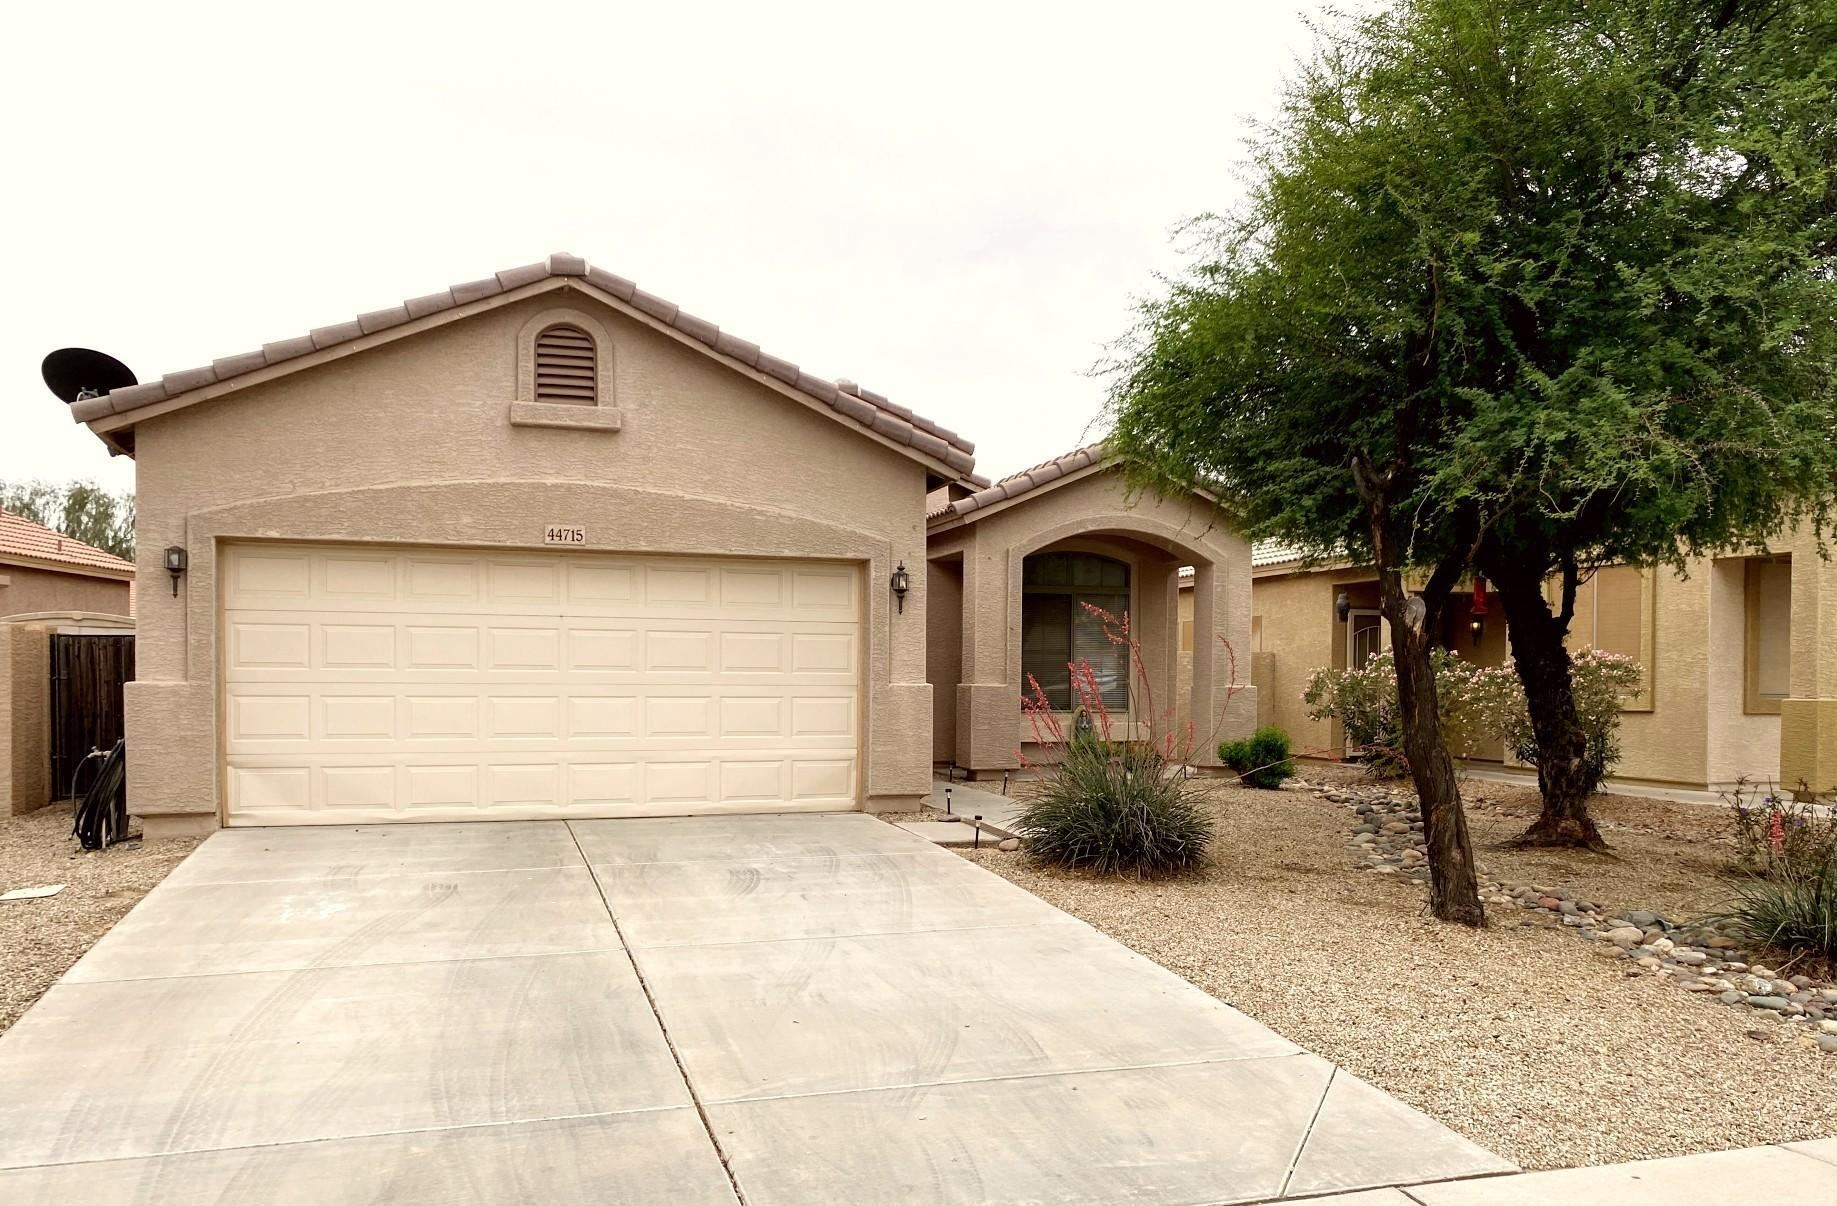 Photo for 44715 W ALAMENDRAS Street, Maricopa, AZ 85139 (MLS # 6228692)